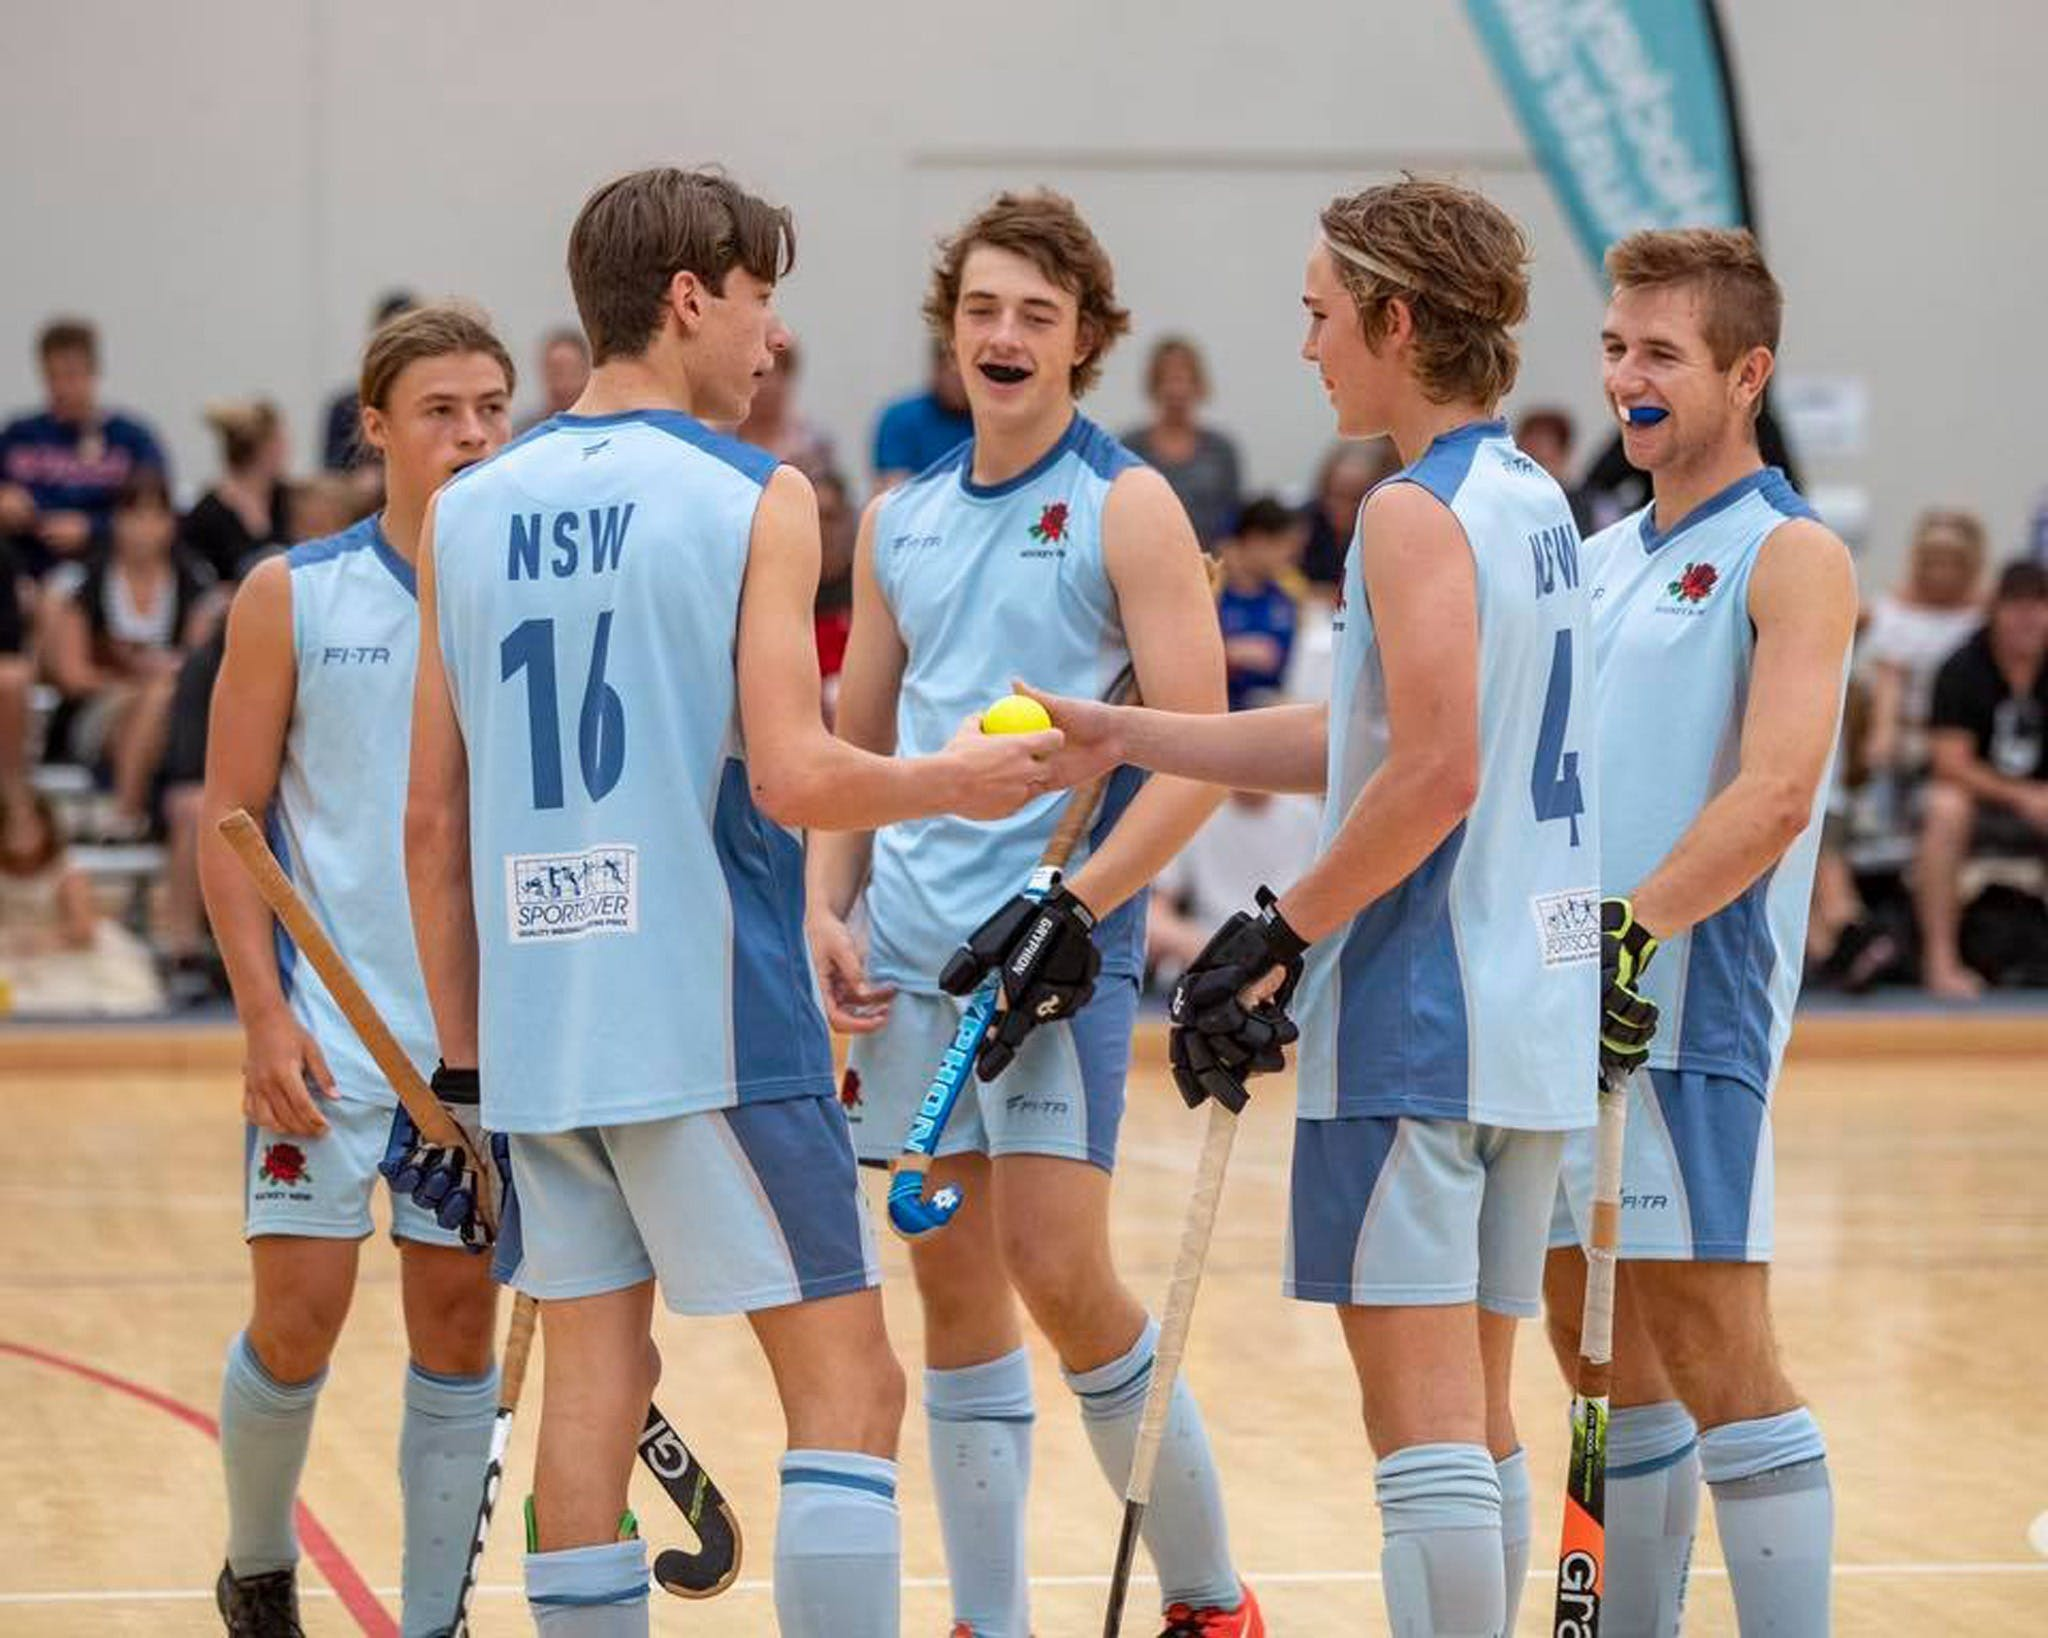 Hockey NSW Indoor State Championship  Open Men - WA Accommodation